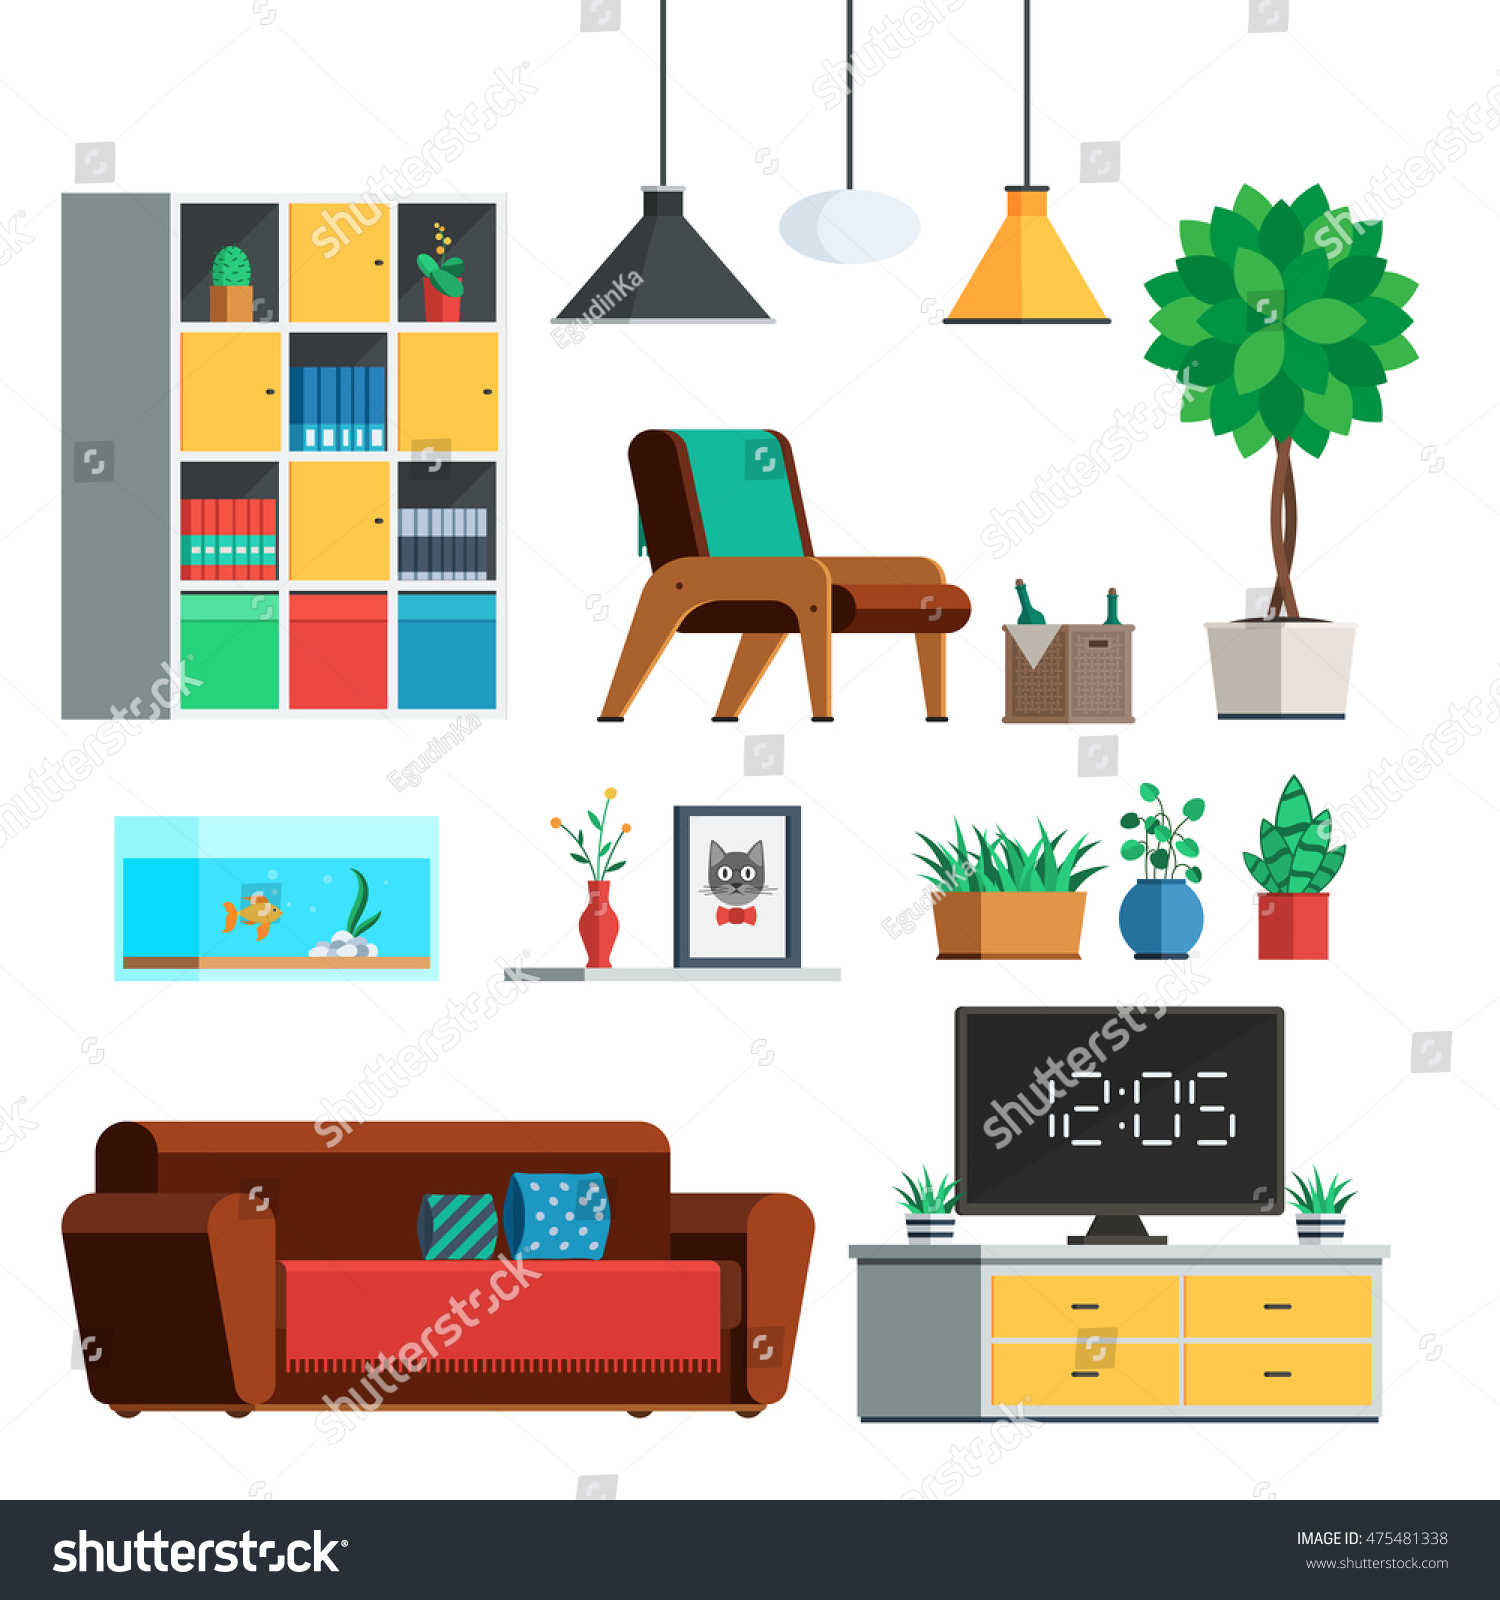 Vector Of Living Room Stock Vector Image Of Sofa: Furniture Interior Set Living Room Lamp Stock Vector